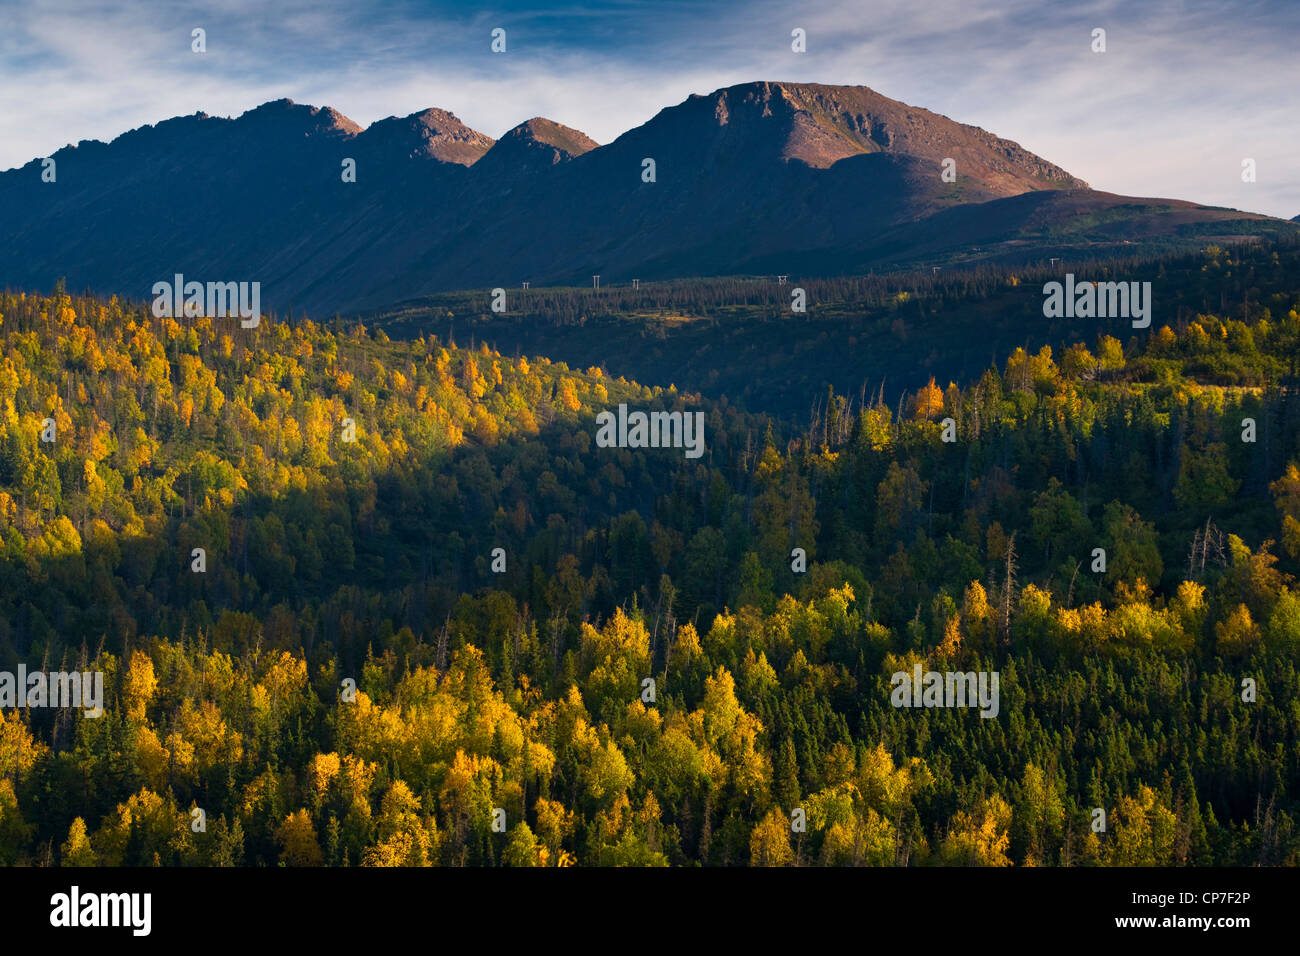 Scenic view of Flattop Peak and Campbell Creek Drainage, Chugach State Park, Southcentral Alaska, Autumn - Stock Image